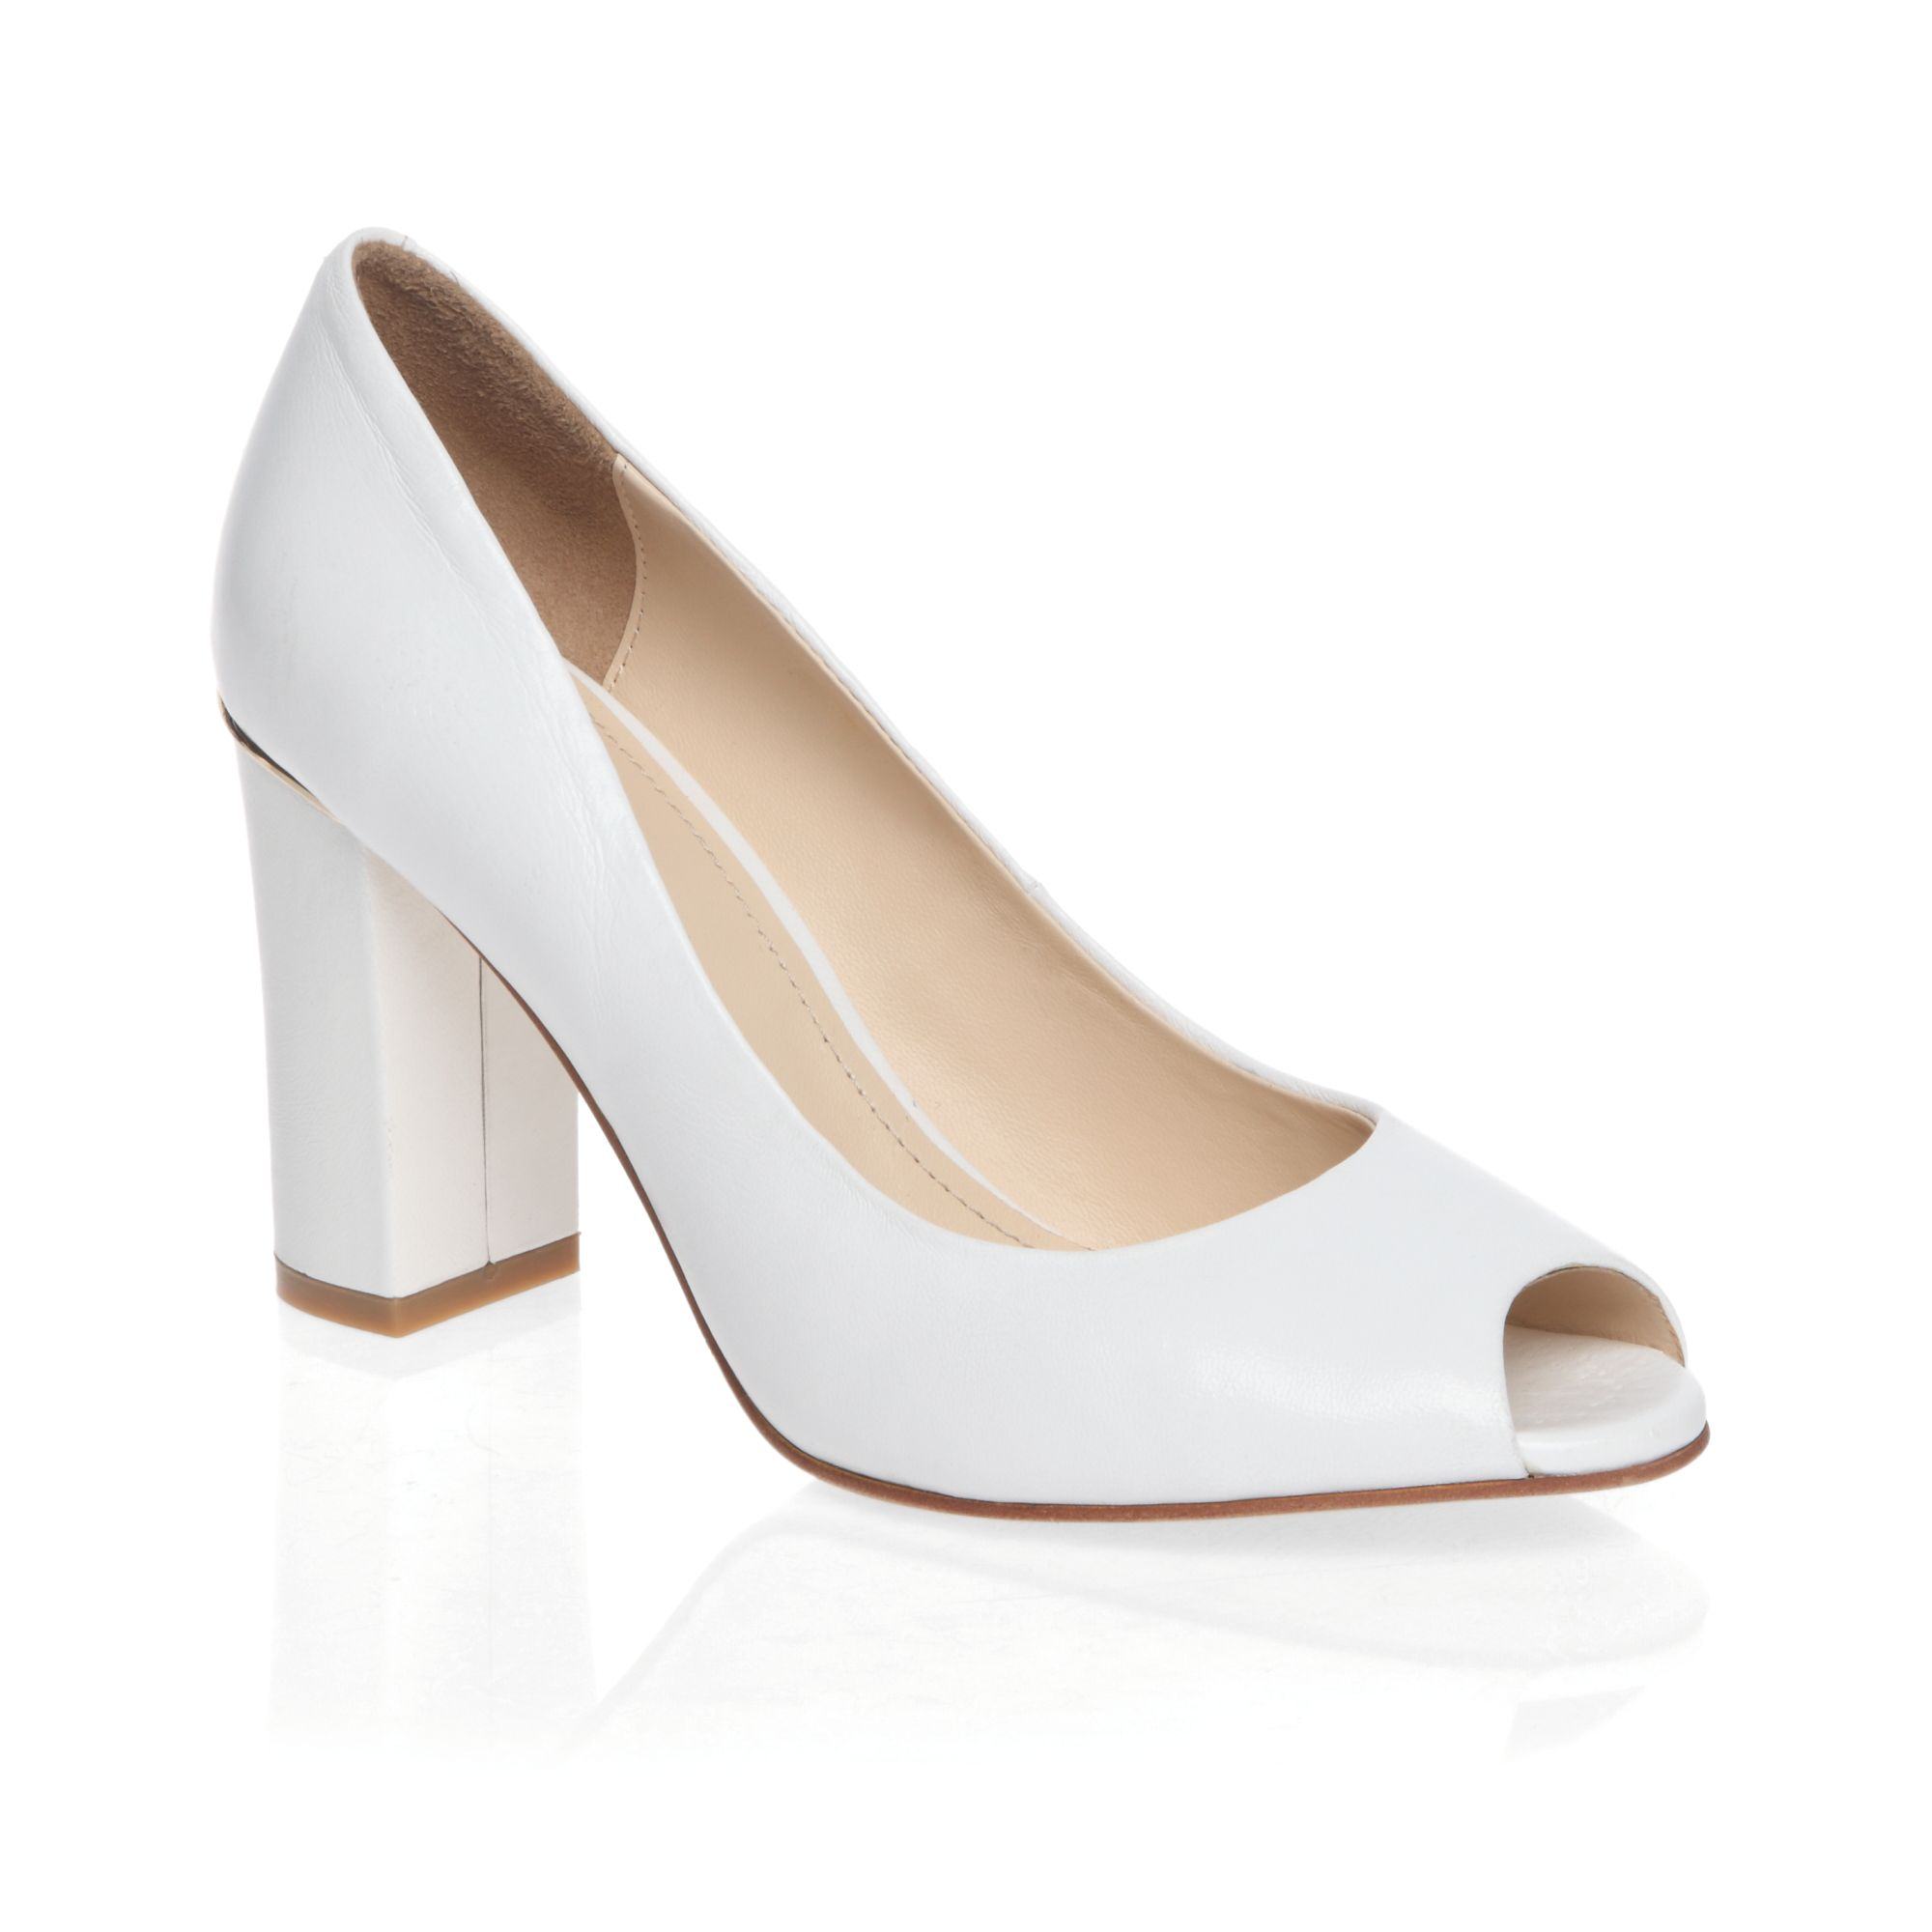 Classic mid heeled peep toe court shoes